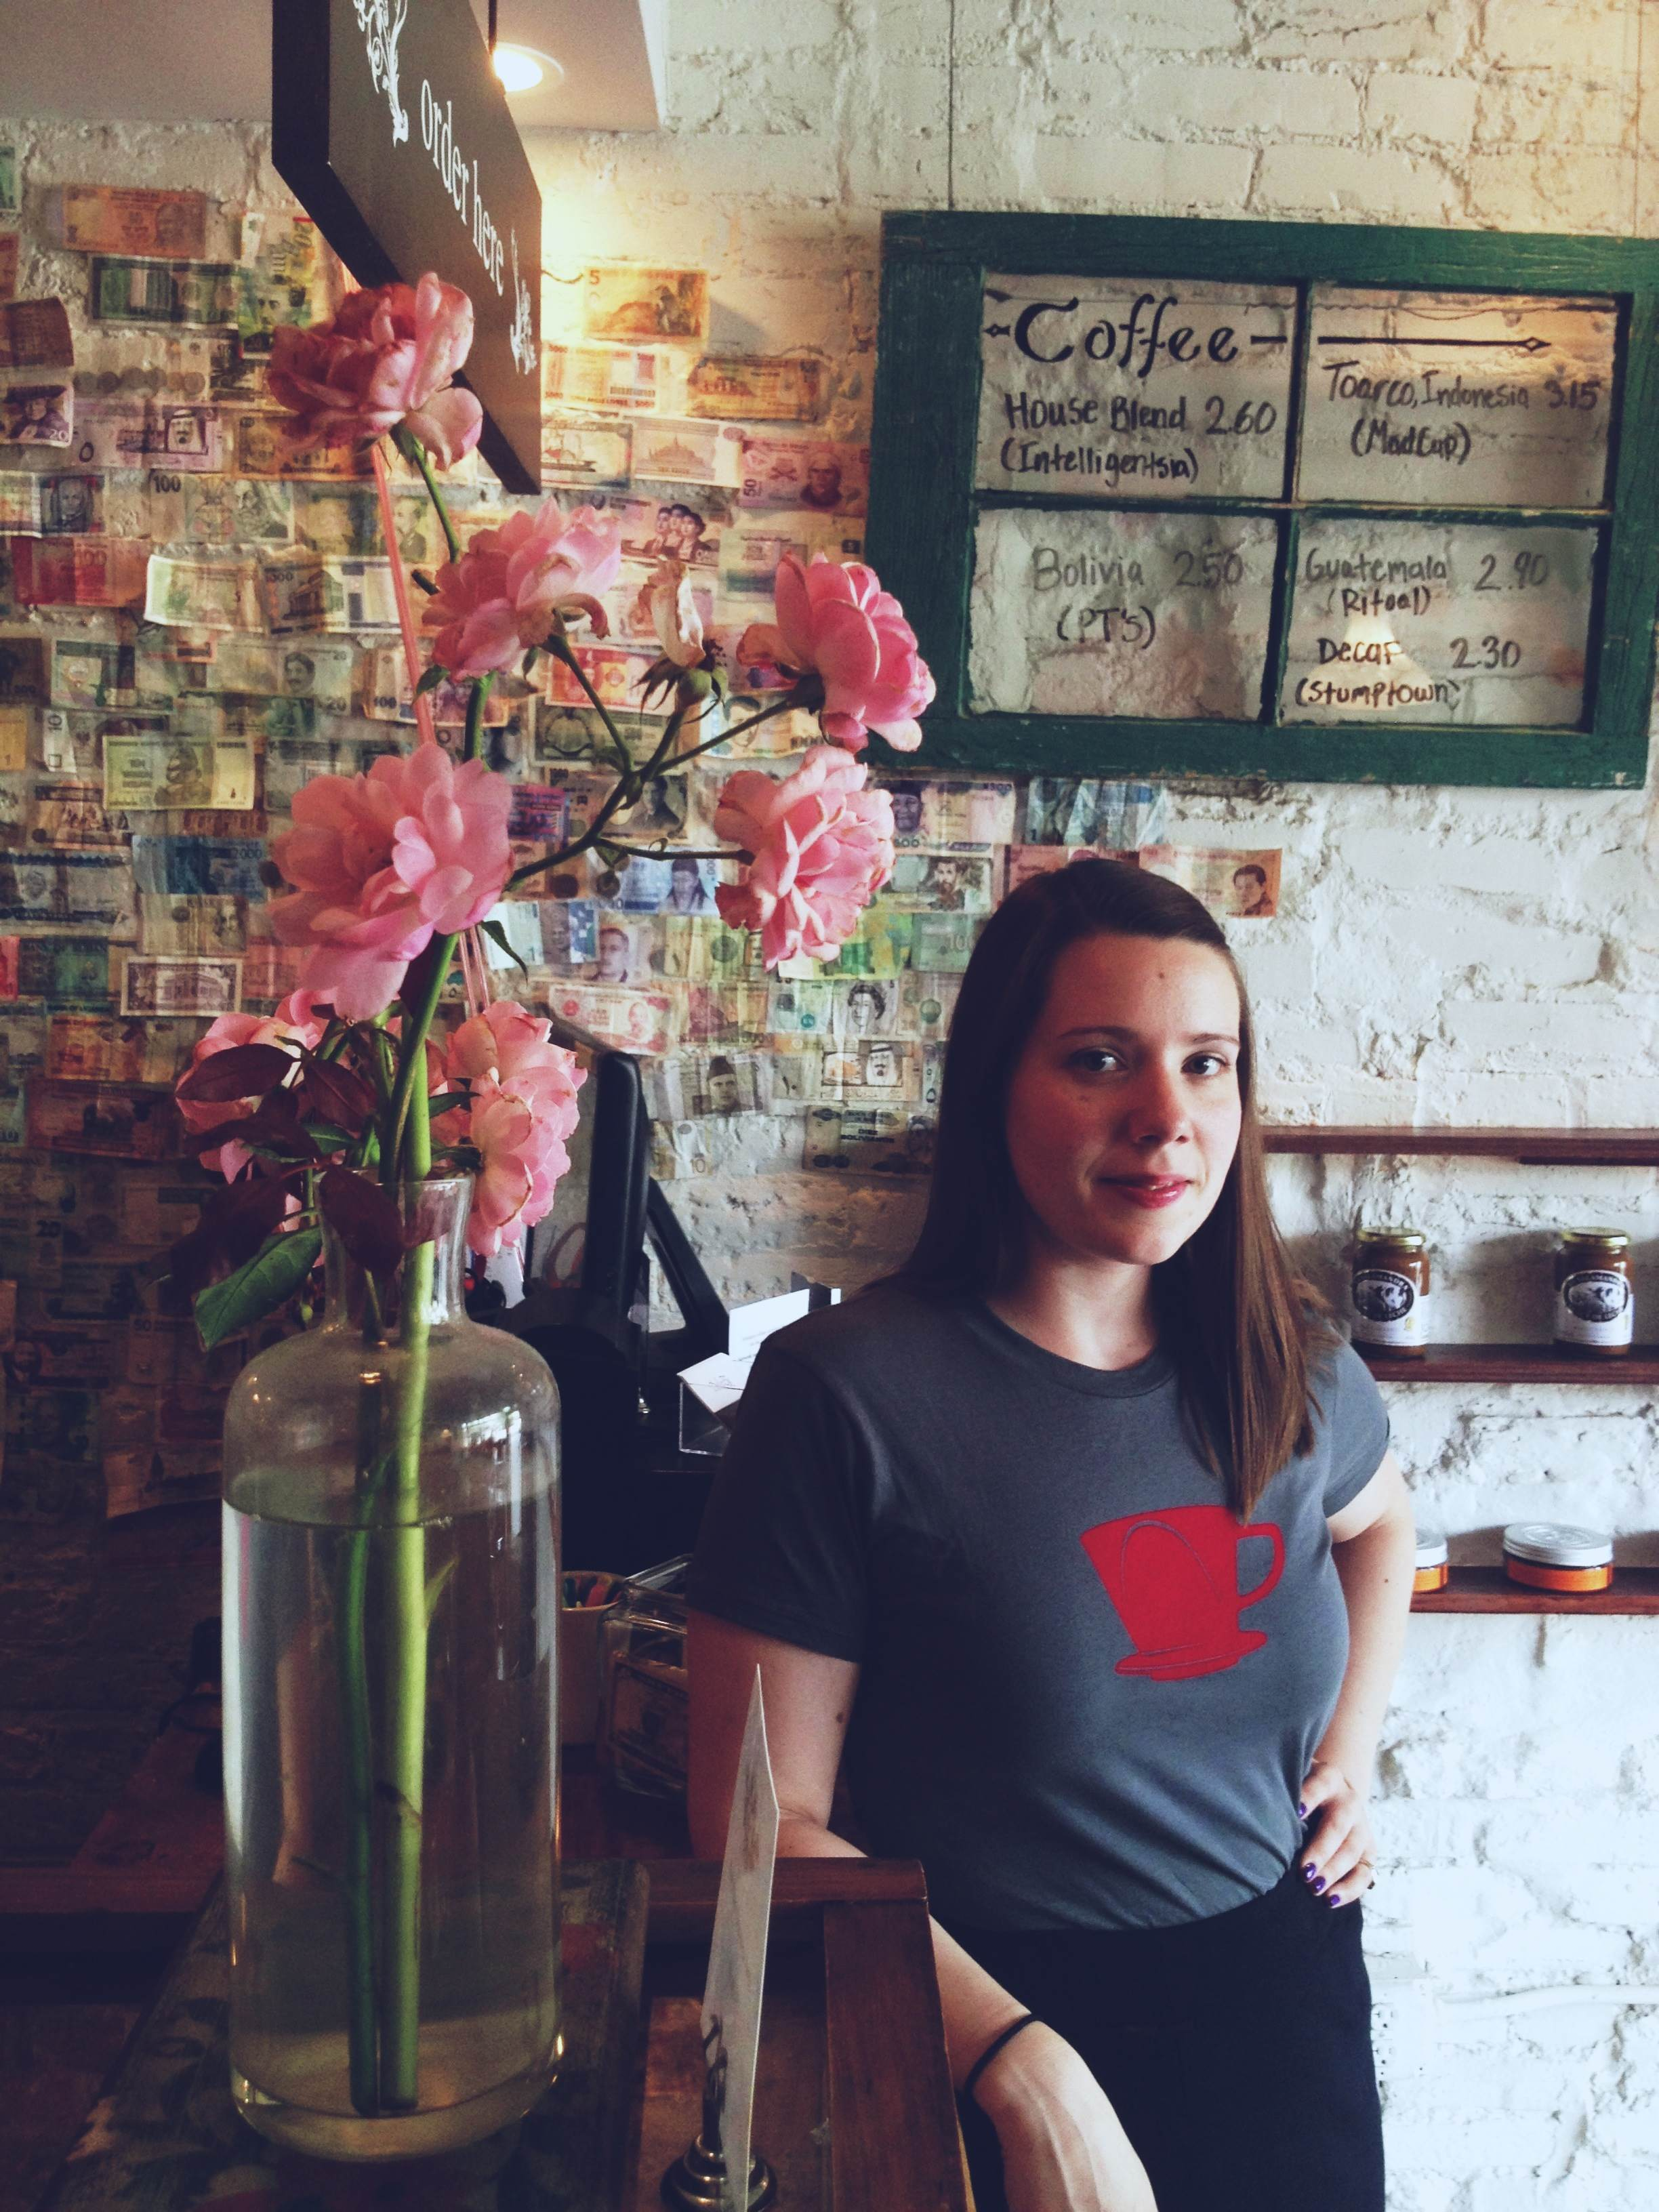 Interview: Amanda Salisbury (Dolcezza Director of Coffee)